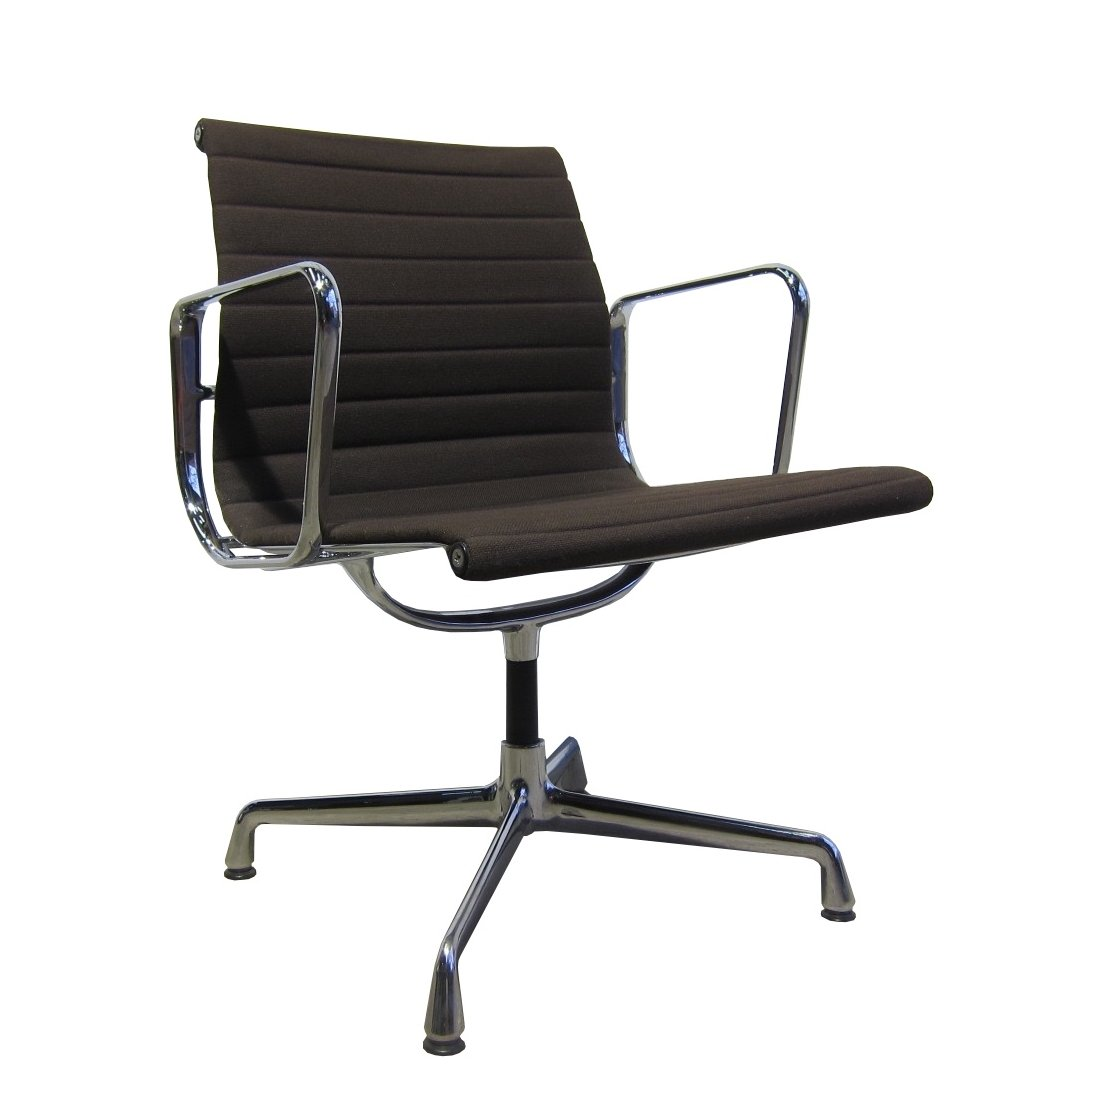 Ea107 alu chair by charles ray eames for vitra 1990s for Eames alu chair nachbau